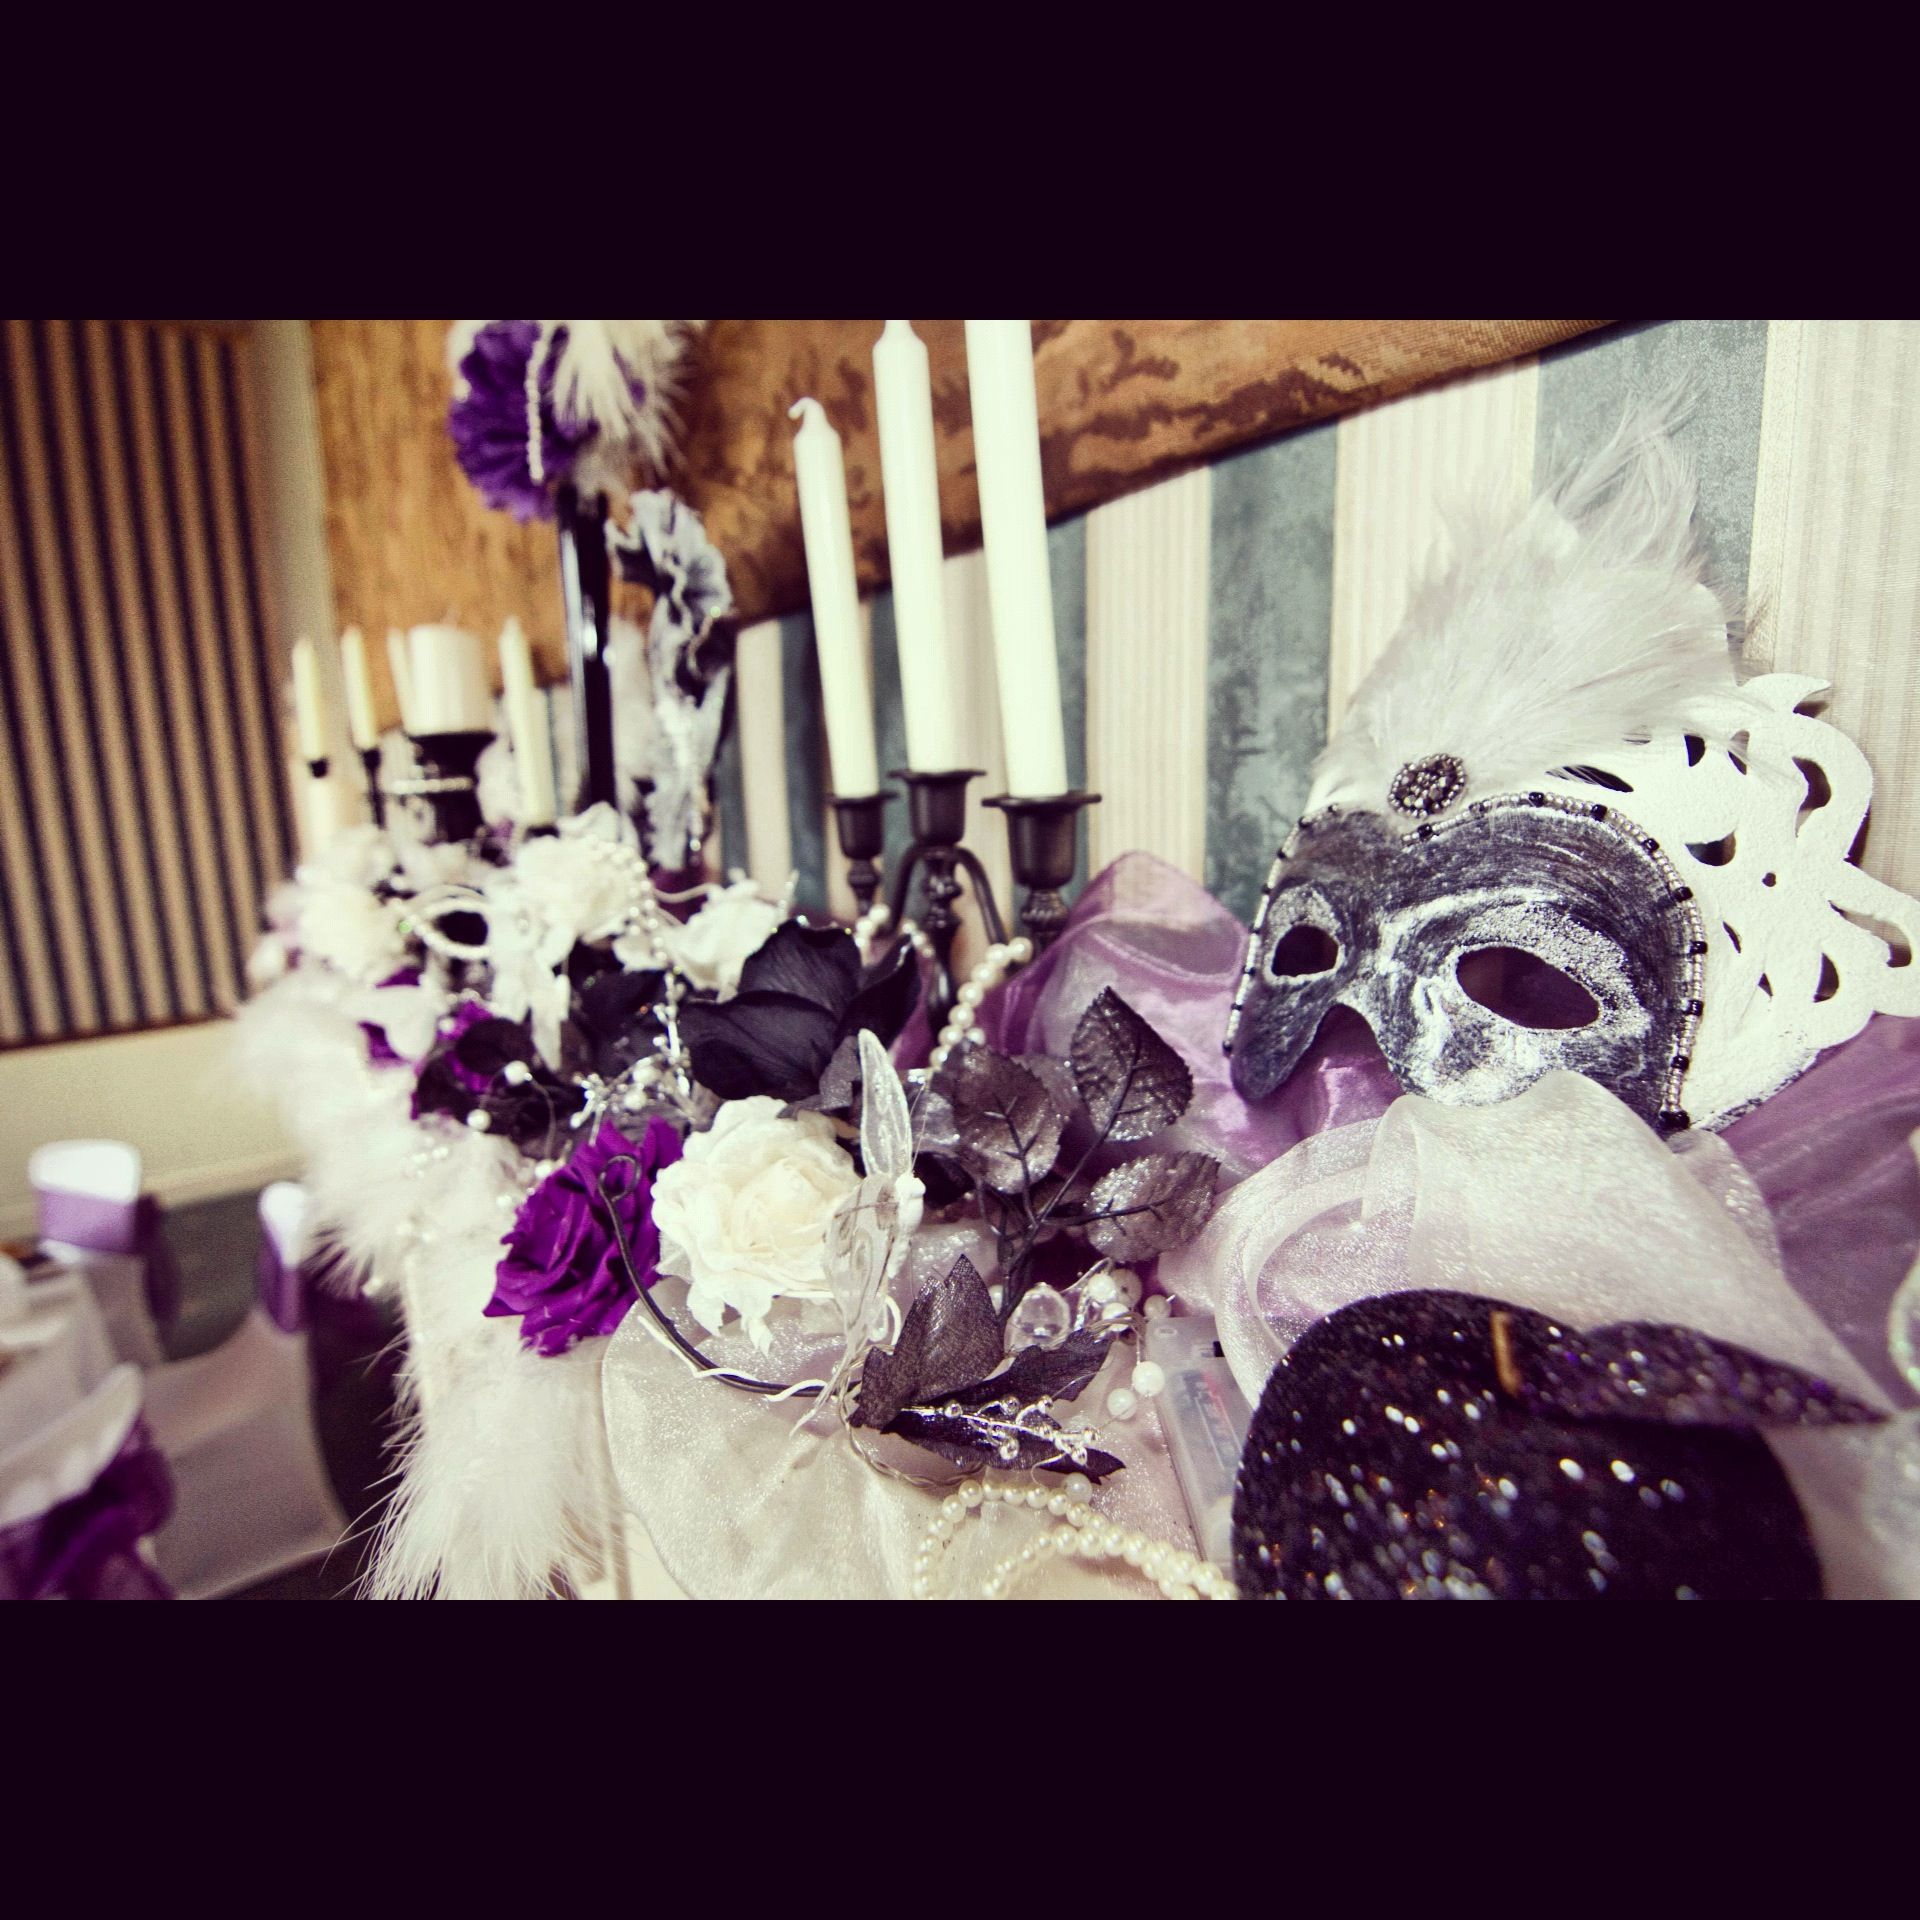 Masquerade Ball Wedding Ideas: Masquerade Wedding Decorations